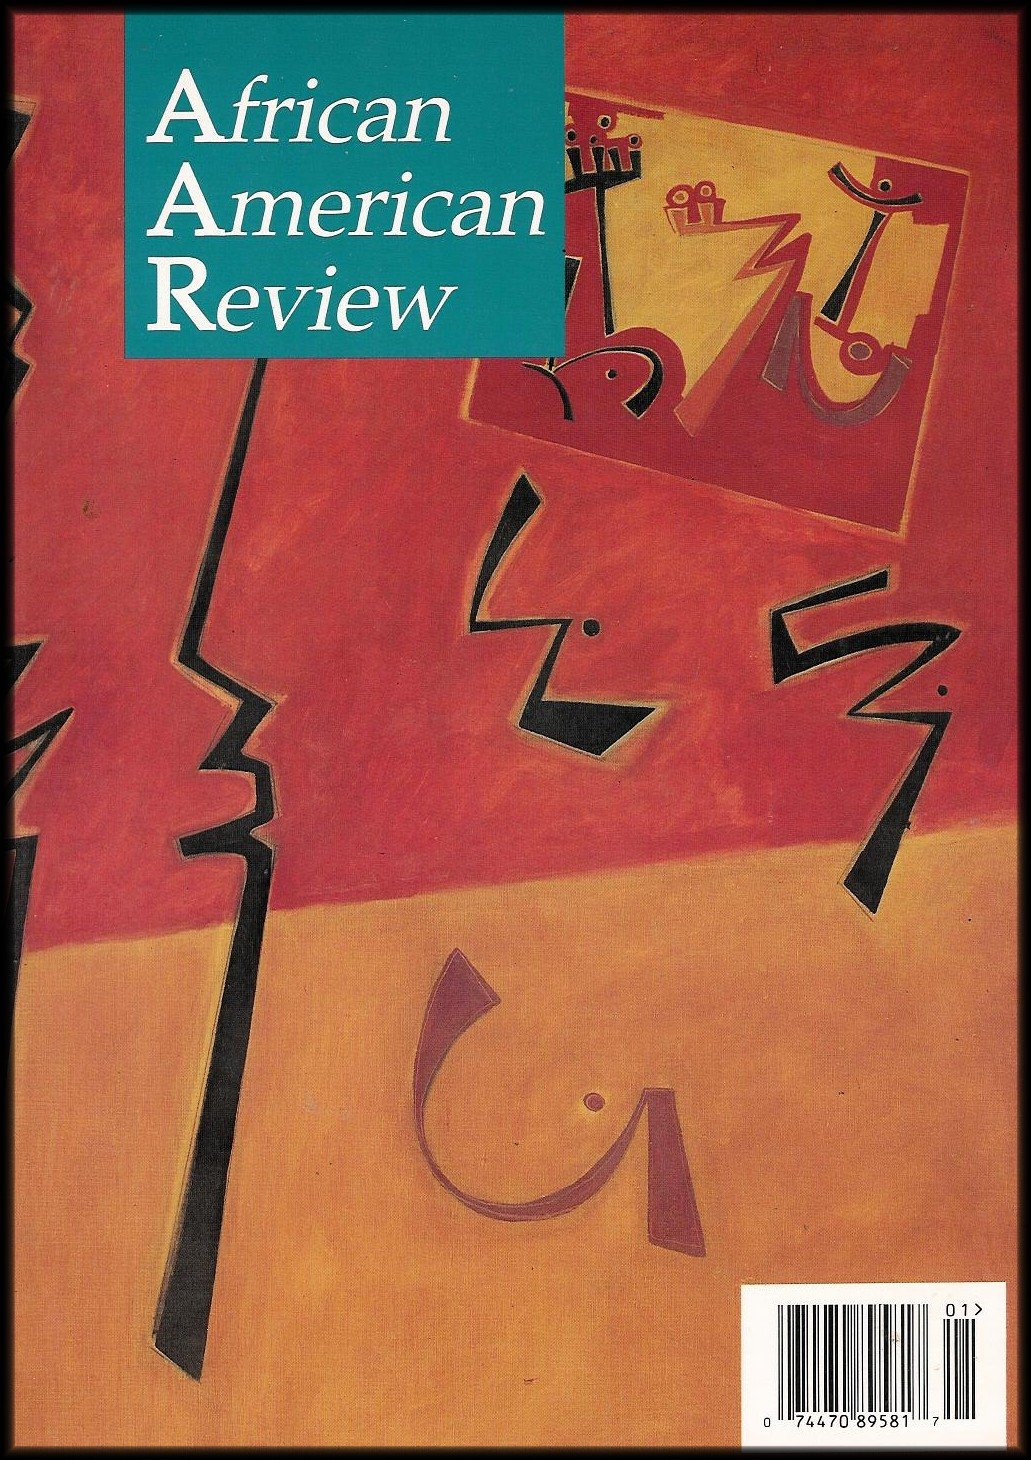 African American Review Cover Art